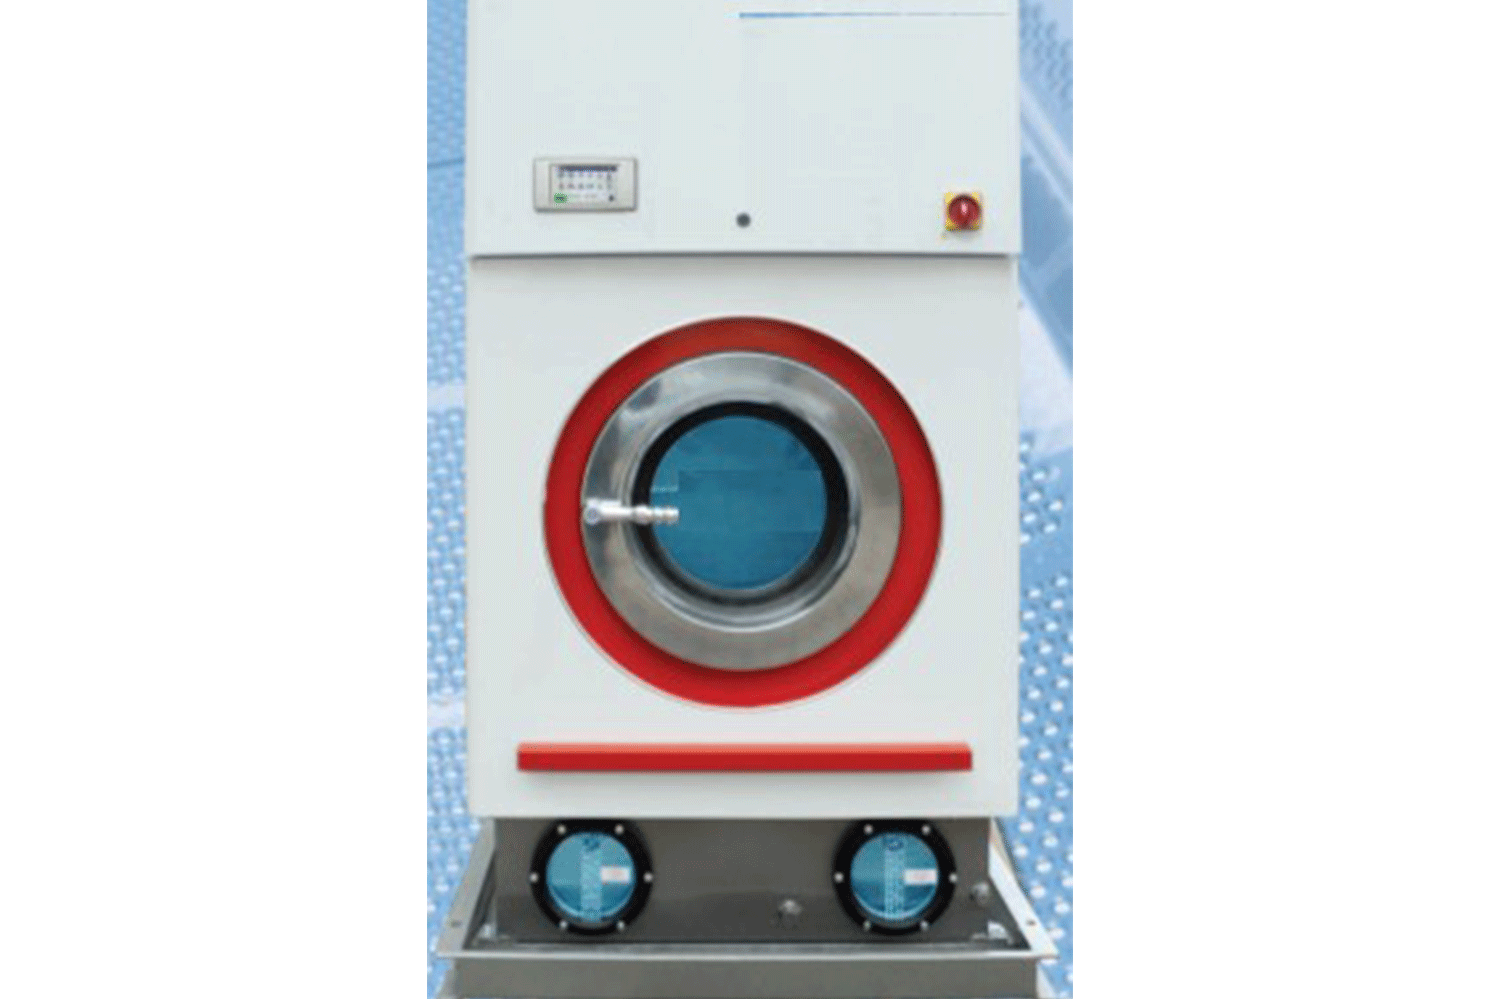 06_1.dry-cleaning_laundry-project-for-hotel